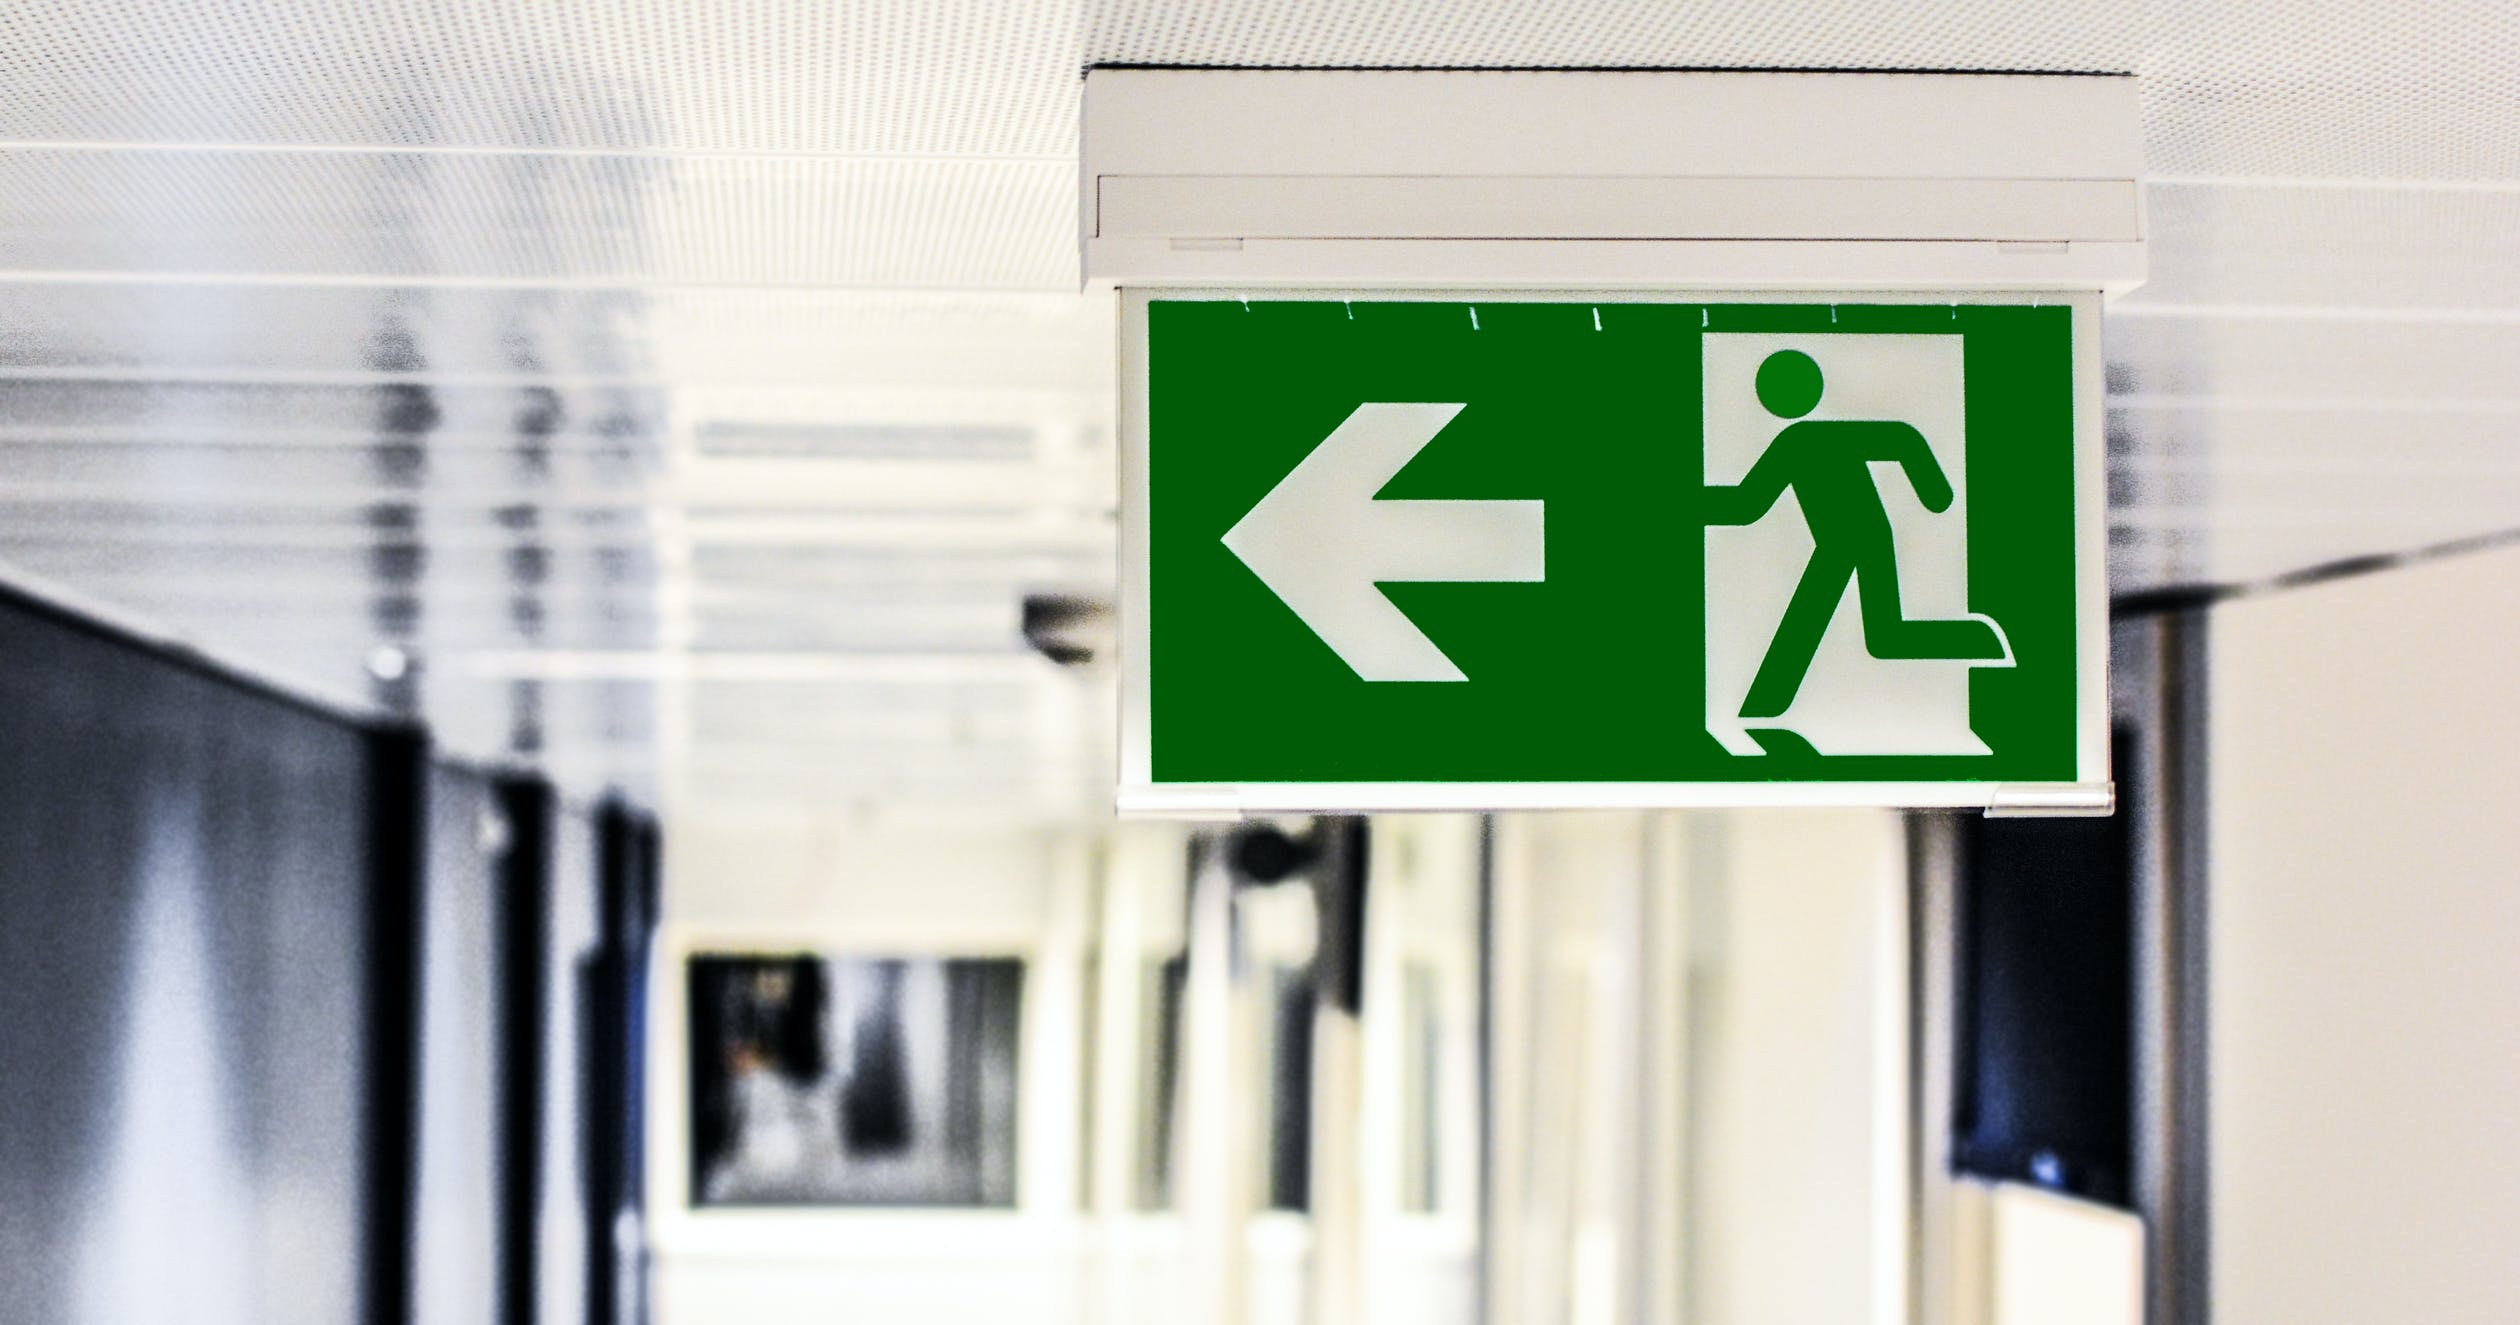 Contact Health and Safety Professionals | GR Safety Solutions